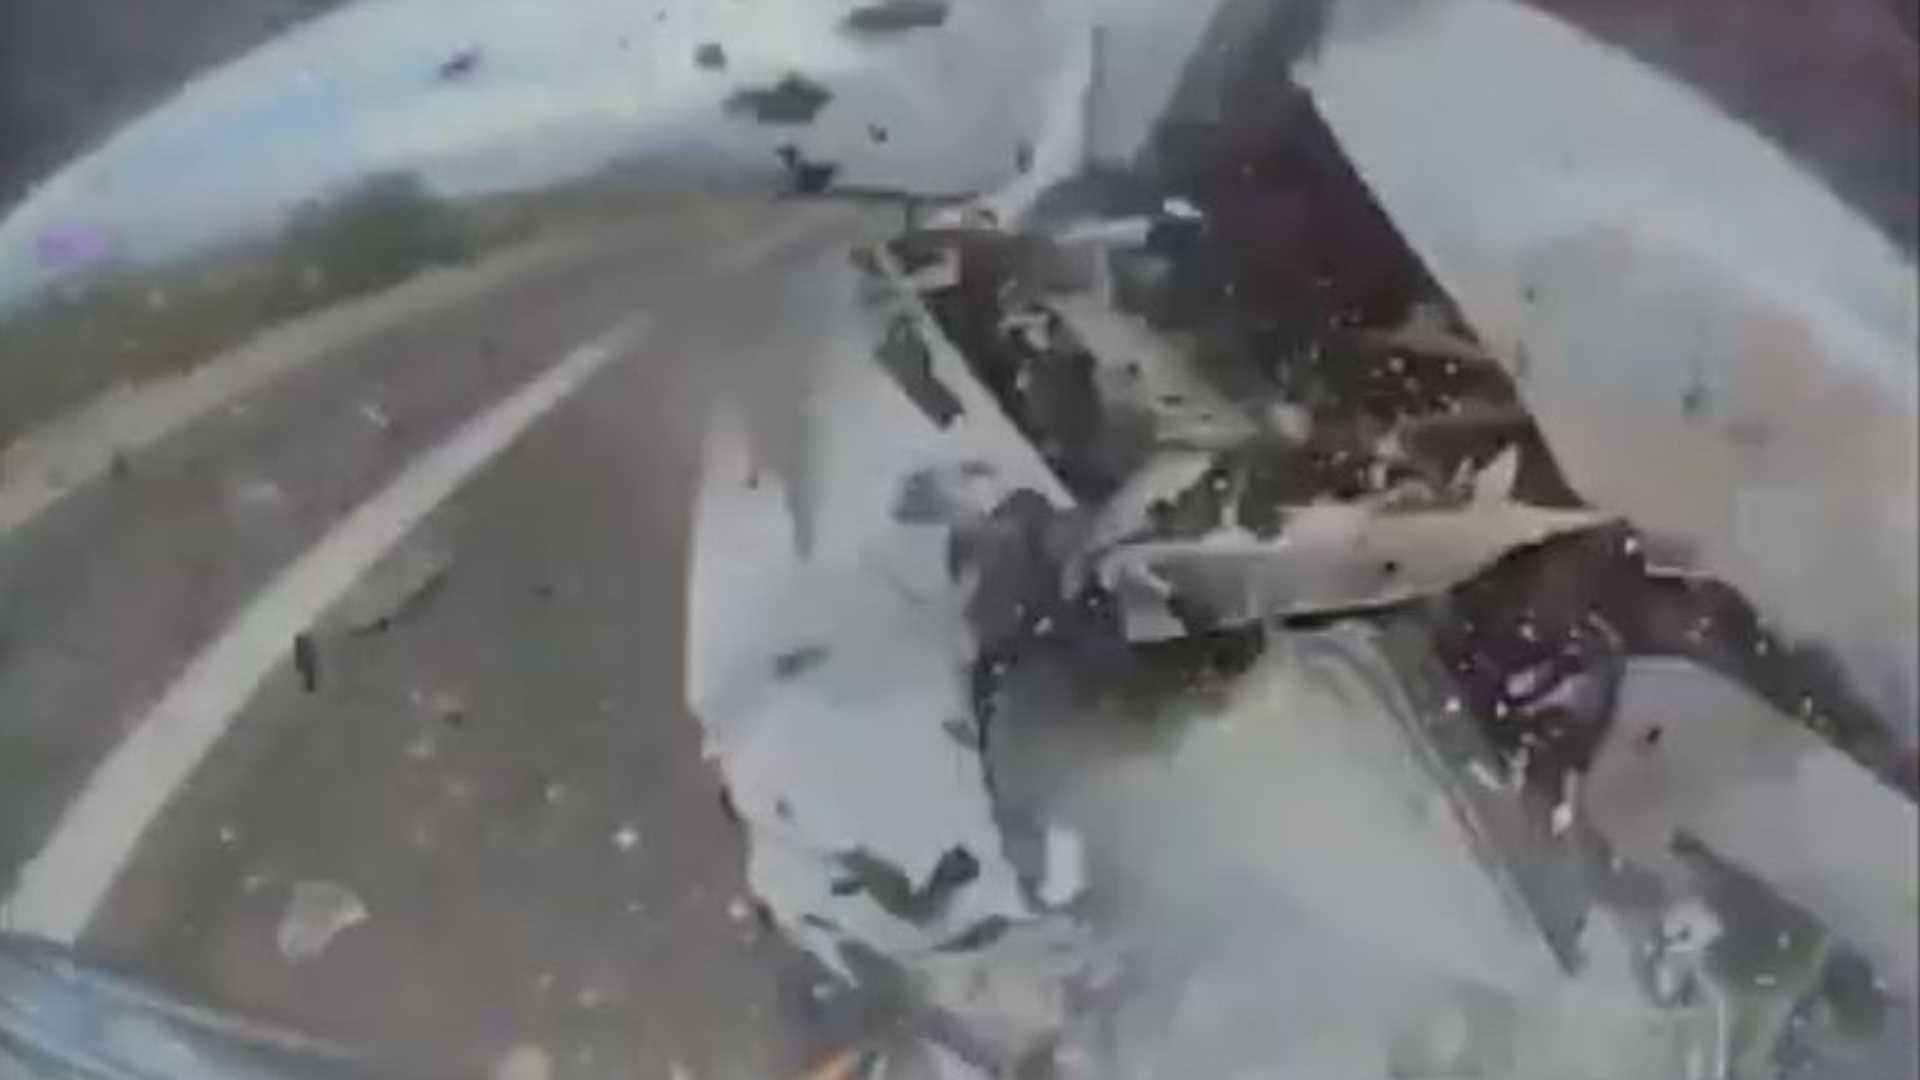 Watch Tesla Model 3 Get Smased And Totaled In Violent Rear-End Crash